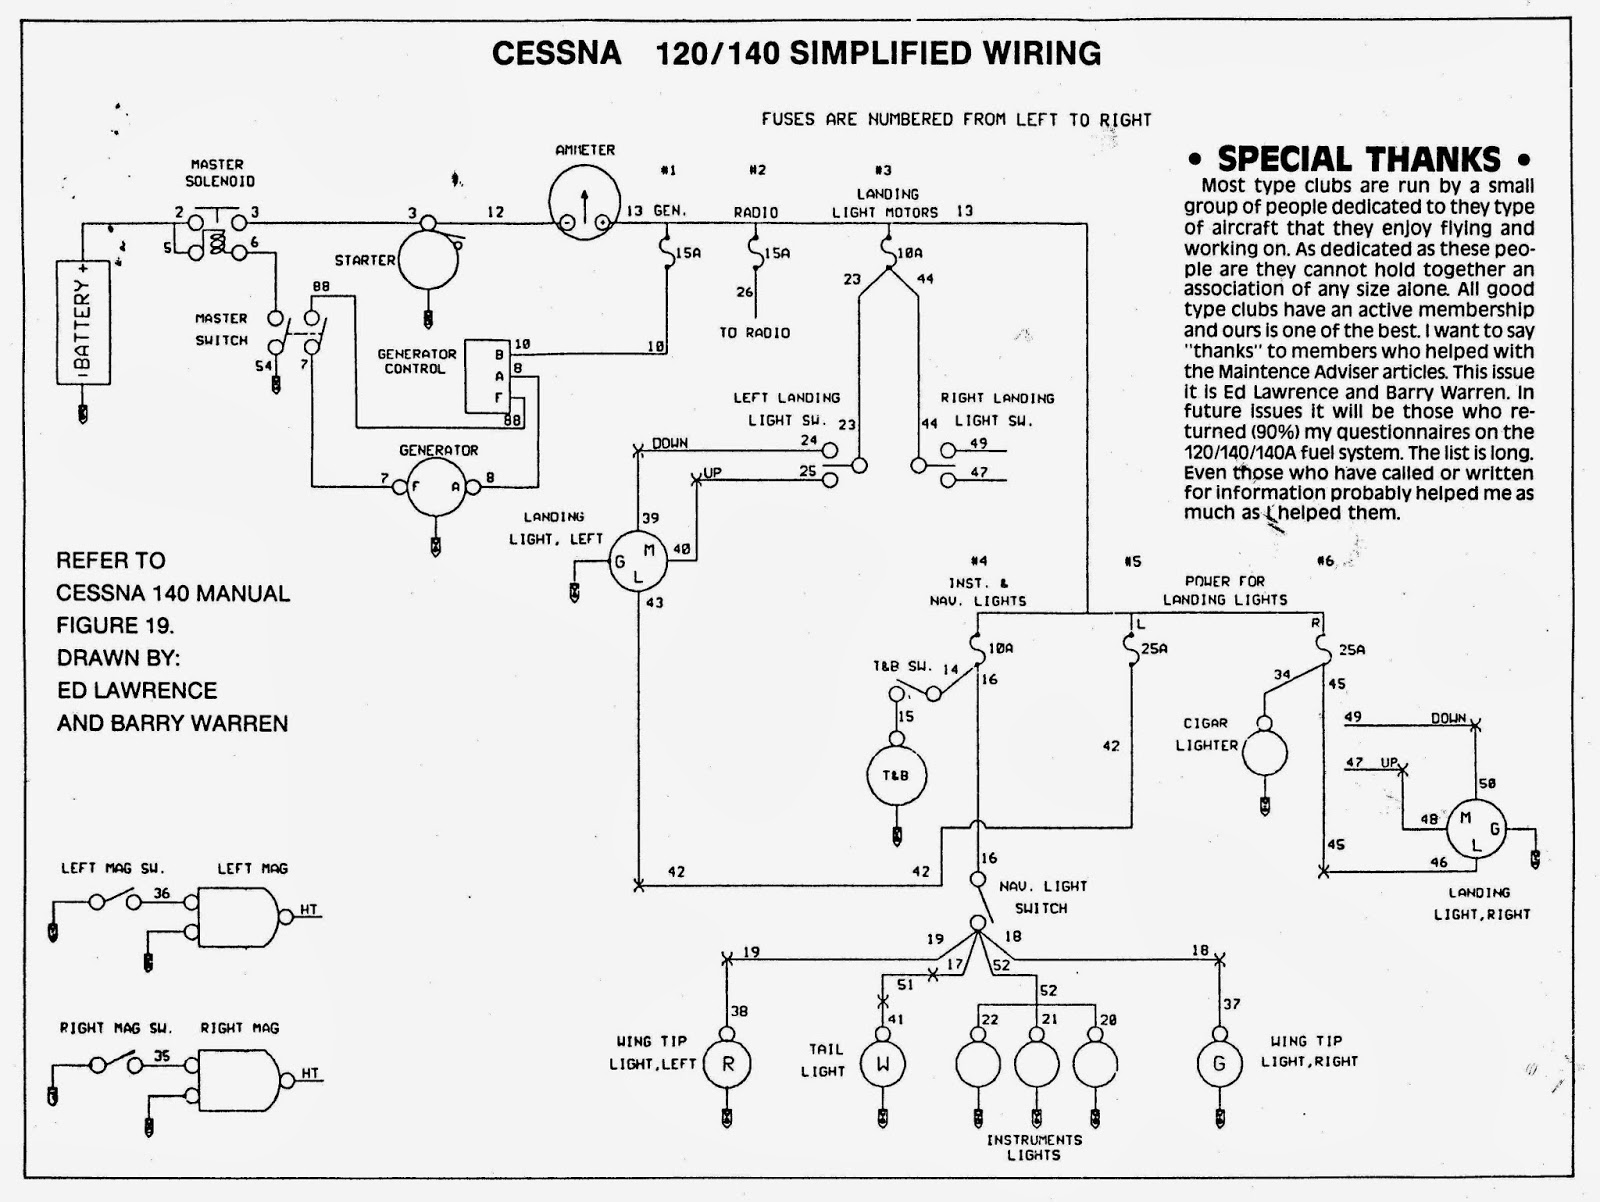 Basic Aircraft Wiring Diagram | Wiring Liry on